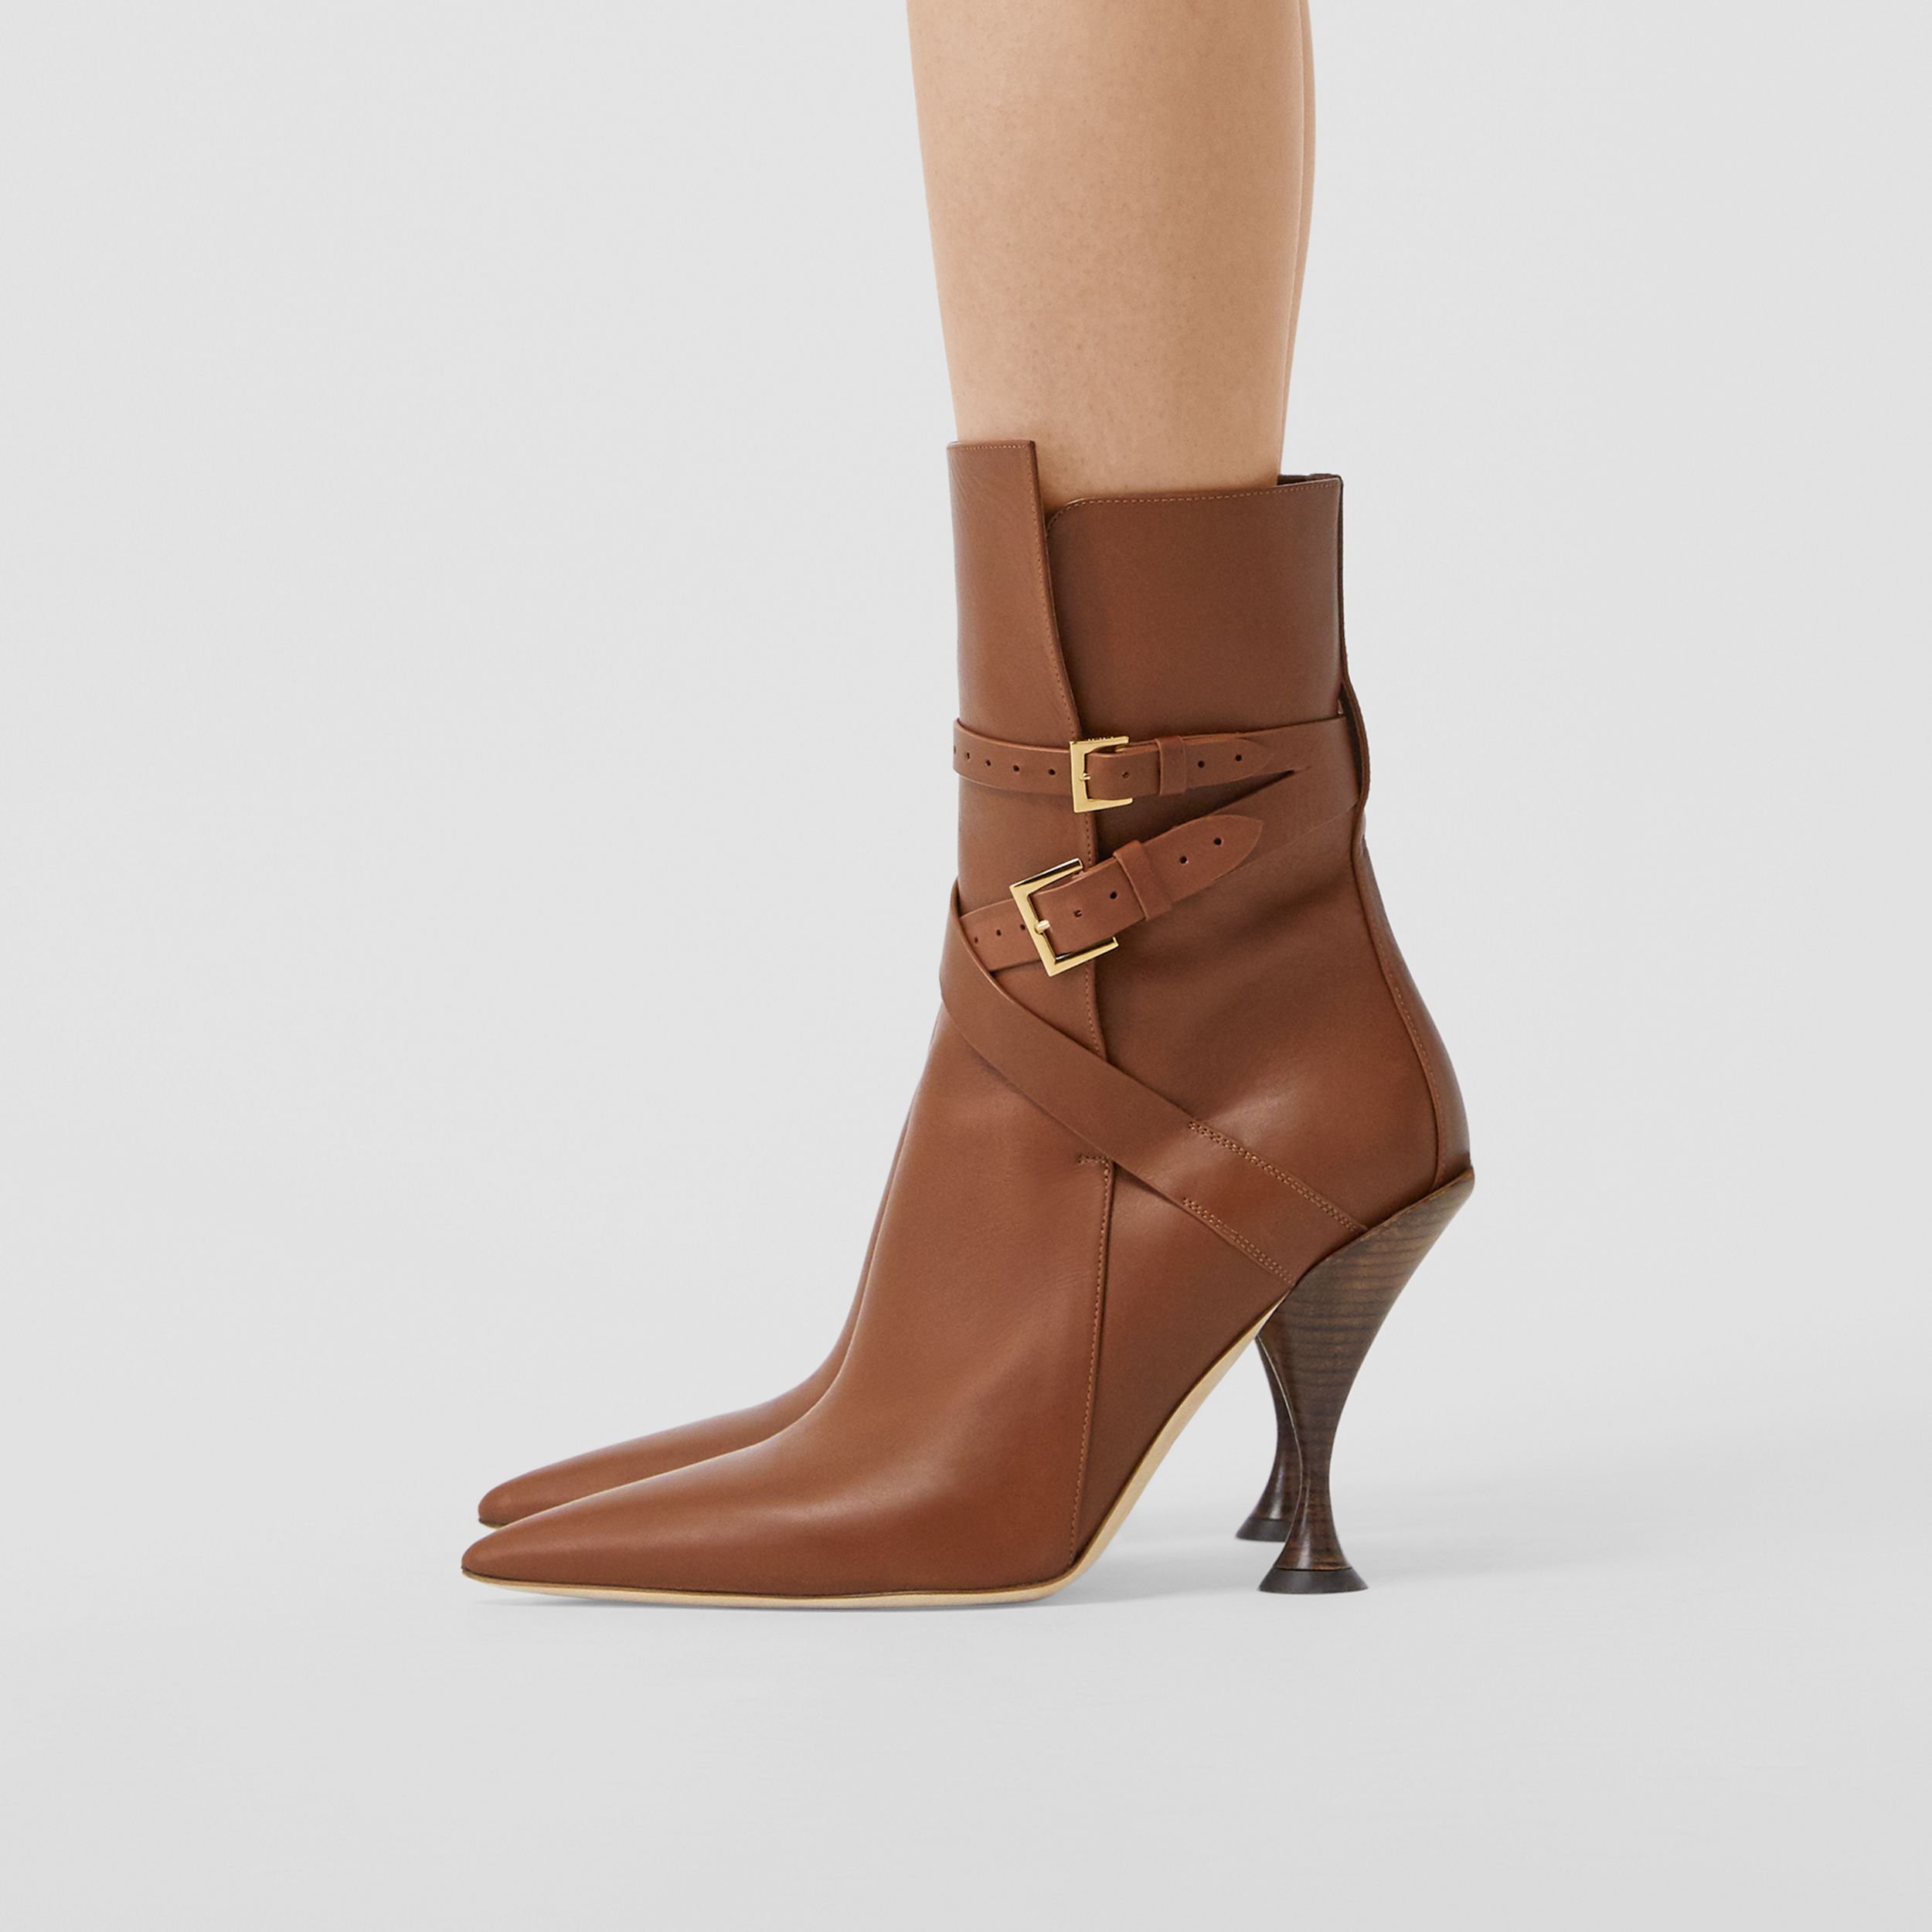 Strap Detail Leather Ankle Boots in Tan - Women | Burberry - 3